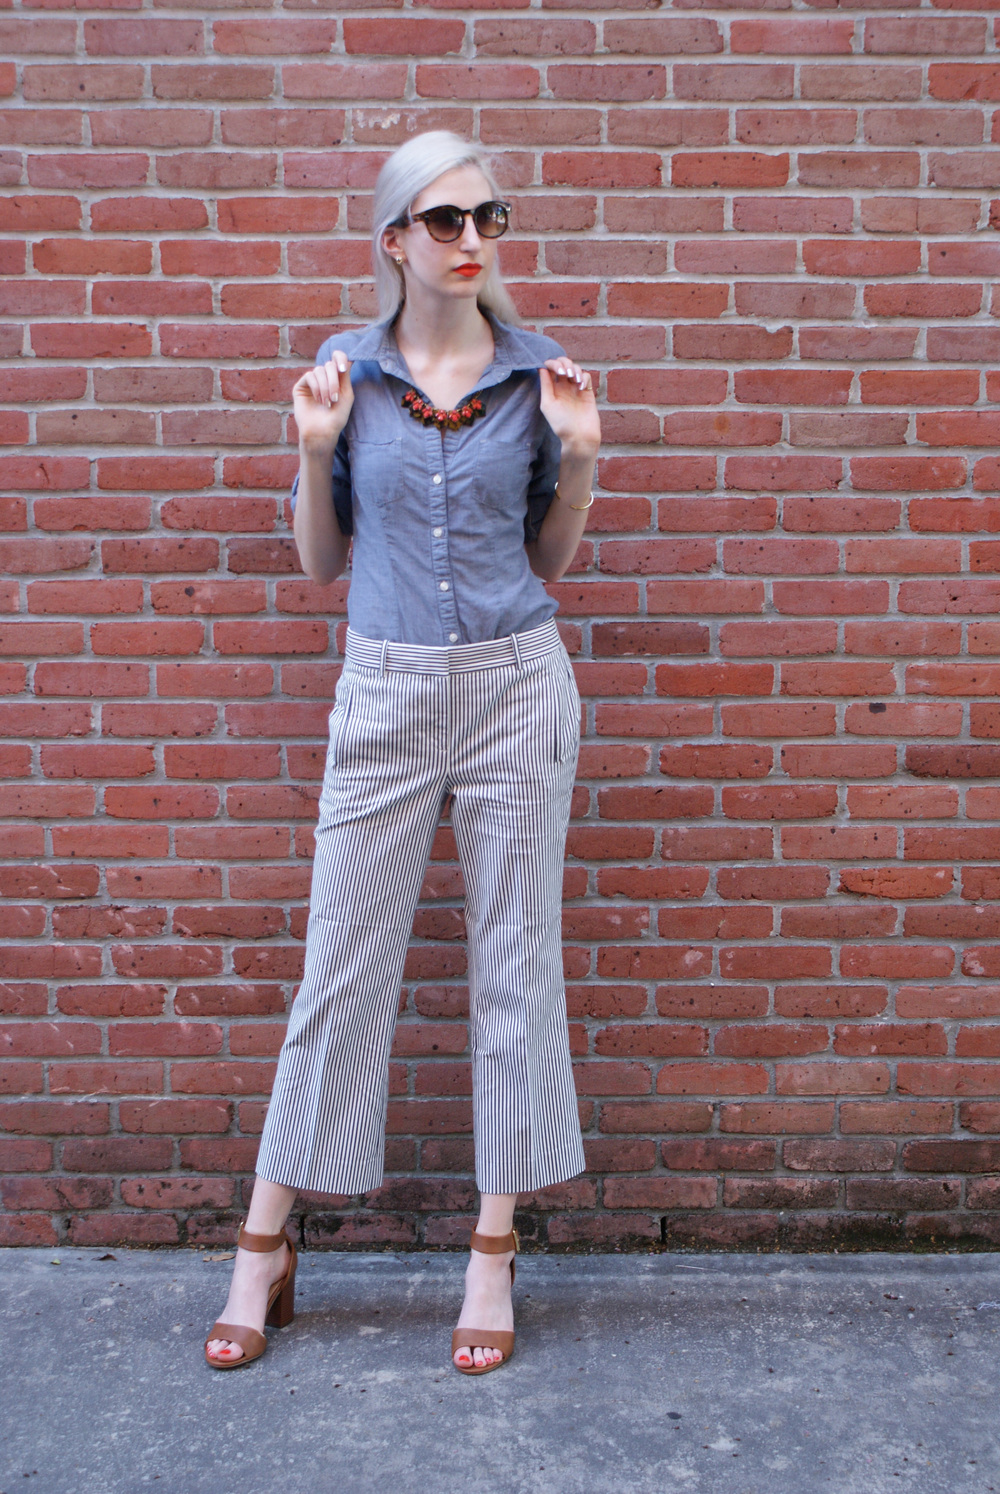 J.Crew Seersucker Teddie Pant, Chambray button down shirt, merona target ankle strap block heel sandals, J.Crew tortoise statement necklace, Kat Von D orange lipstick